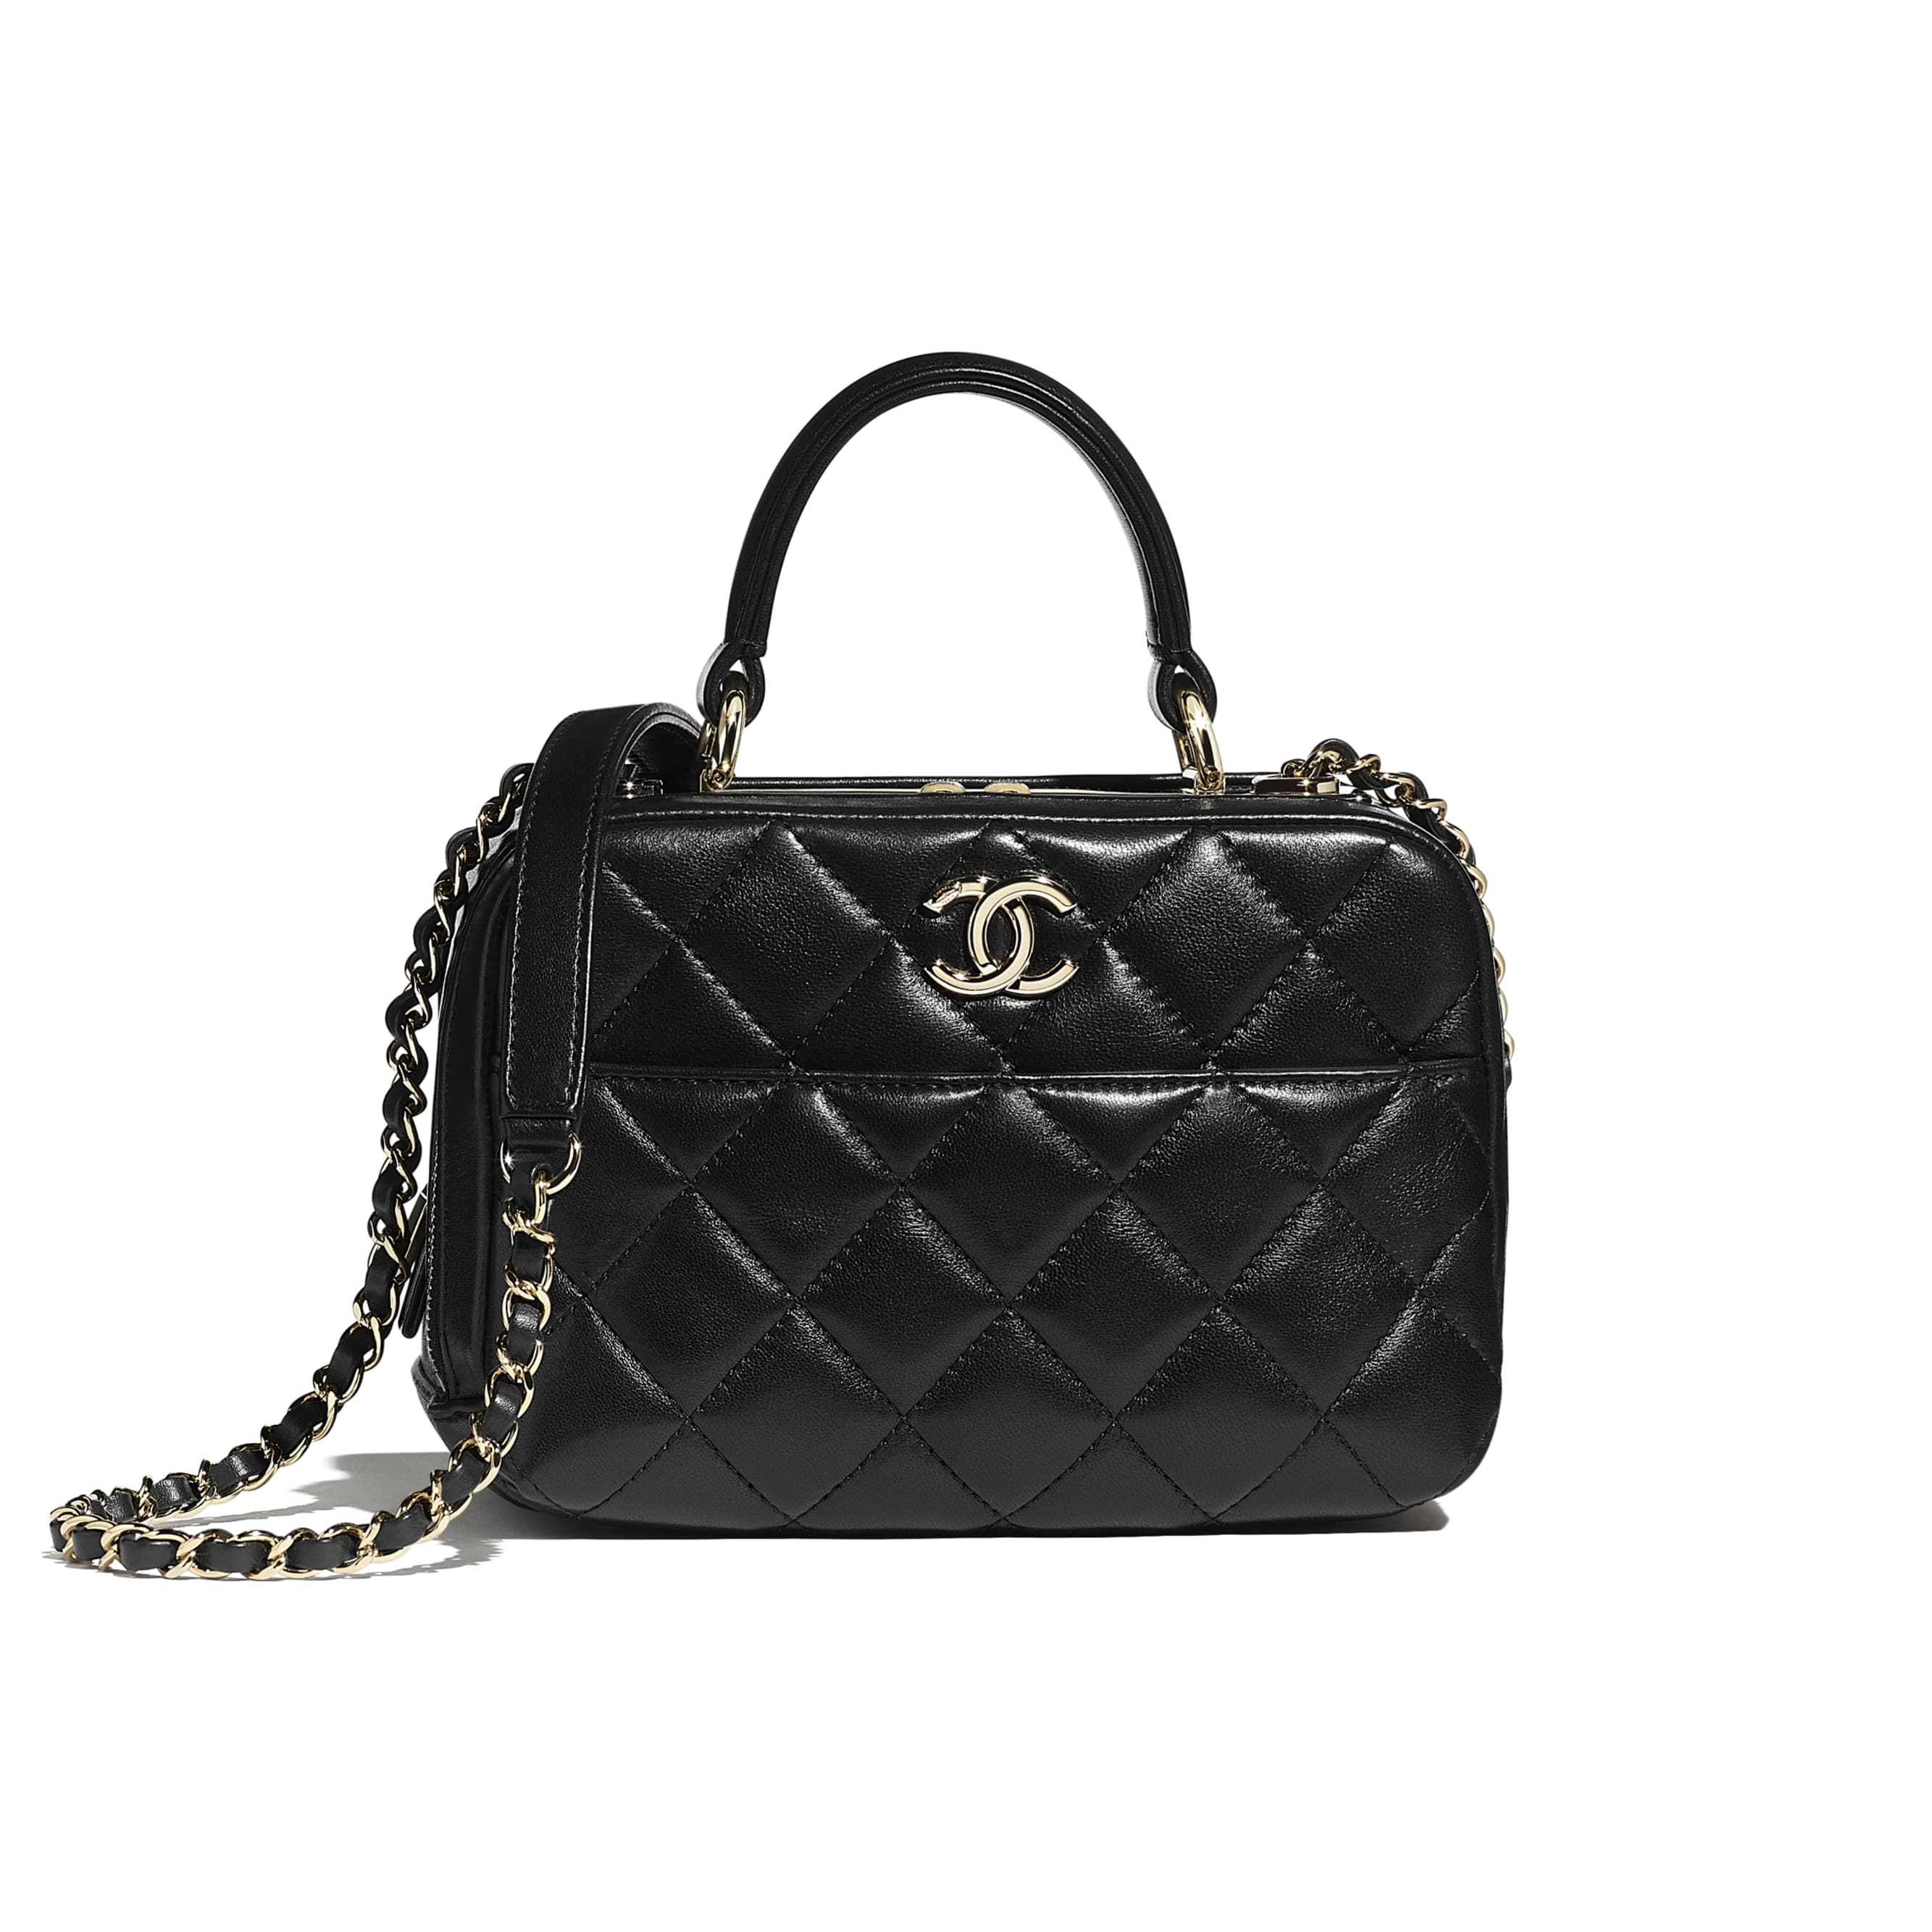 Small Bowling Bag - Black - Lambskin - CHANEL - Default view - see standard sized version